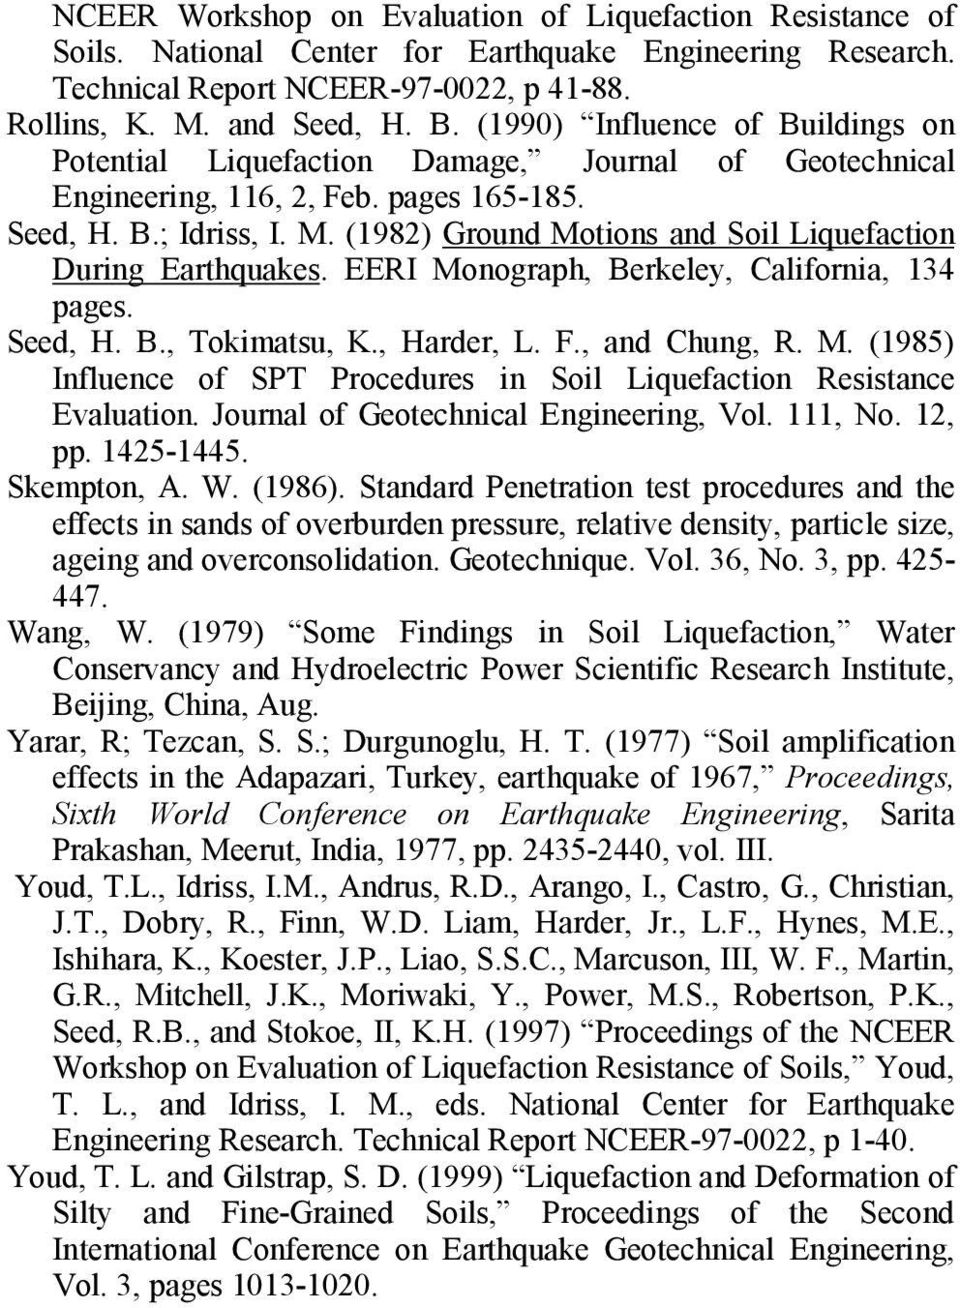 EERI Monograph, Berkeley, California, pages. Seed, H. B., Tokimatsu, K., Harder, L. F., and Chung, R. M. () Influence of SPT Procedures in Soil Liquefaction Resistance Evaluation.